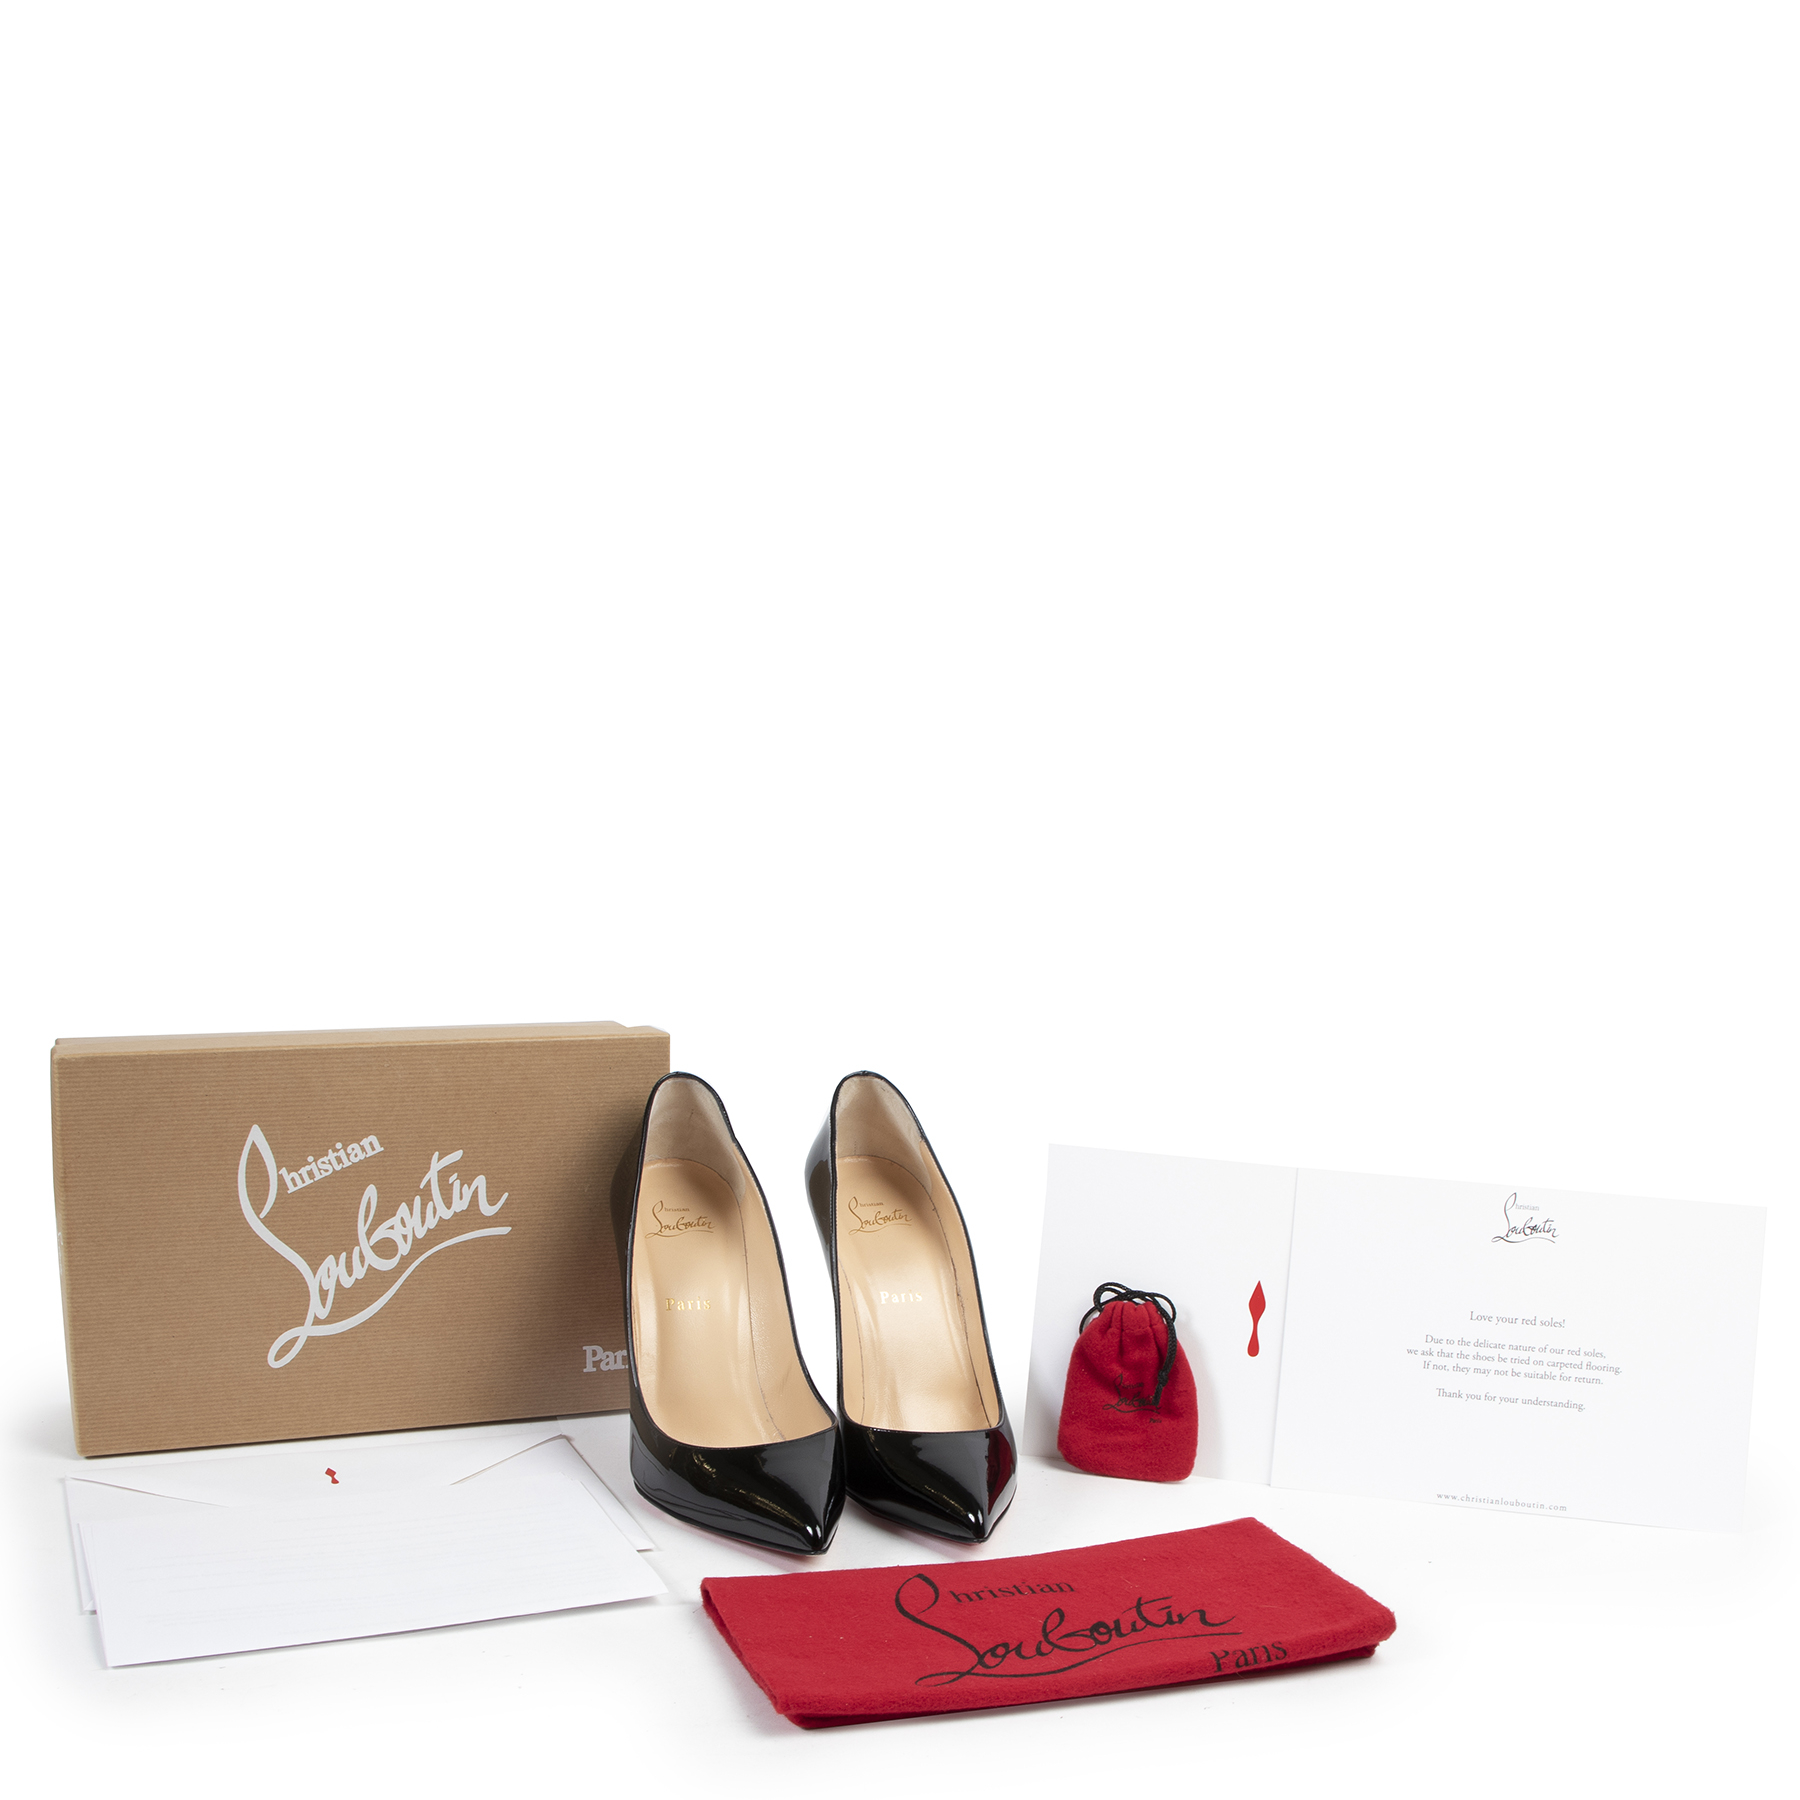 Christian Louboutin Black Patent Pigalle Follies 100 - size 41